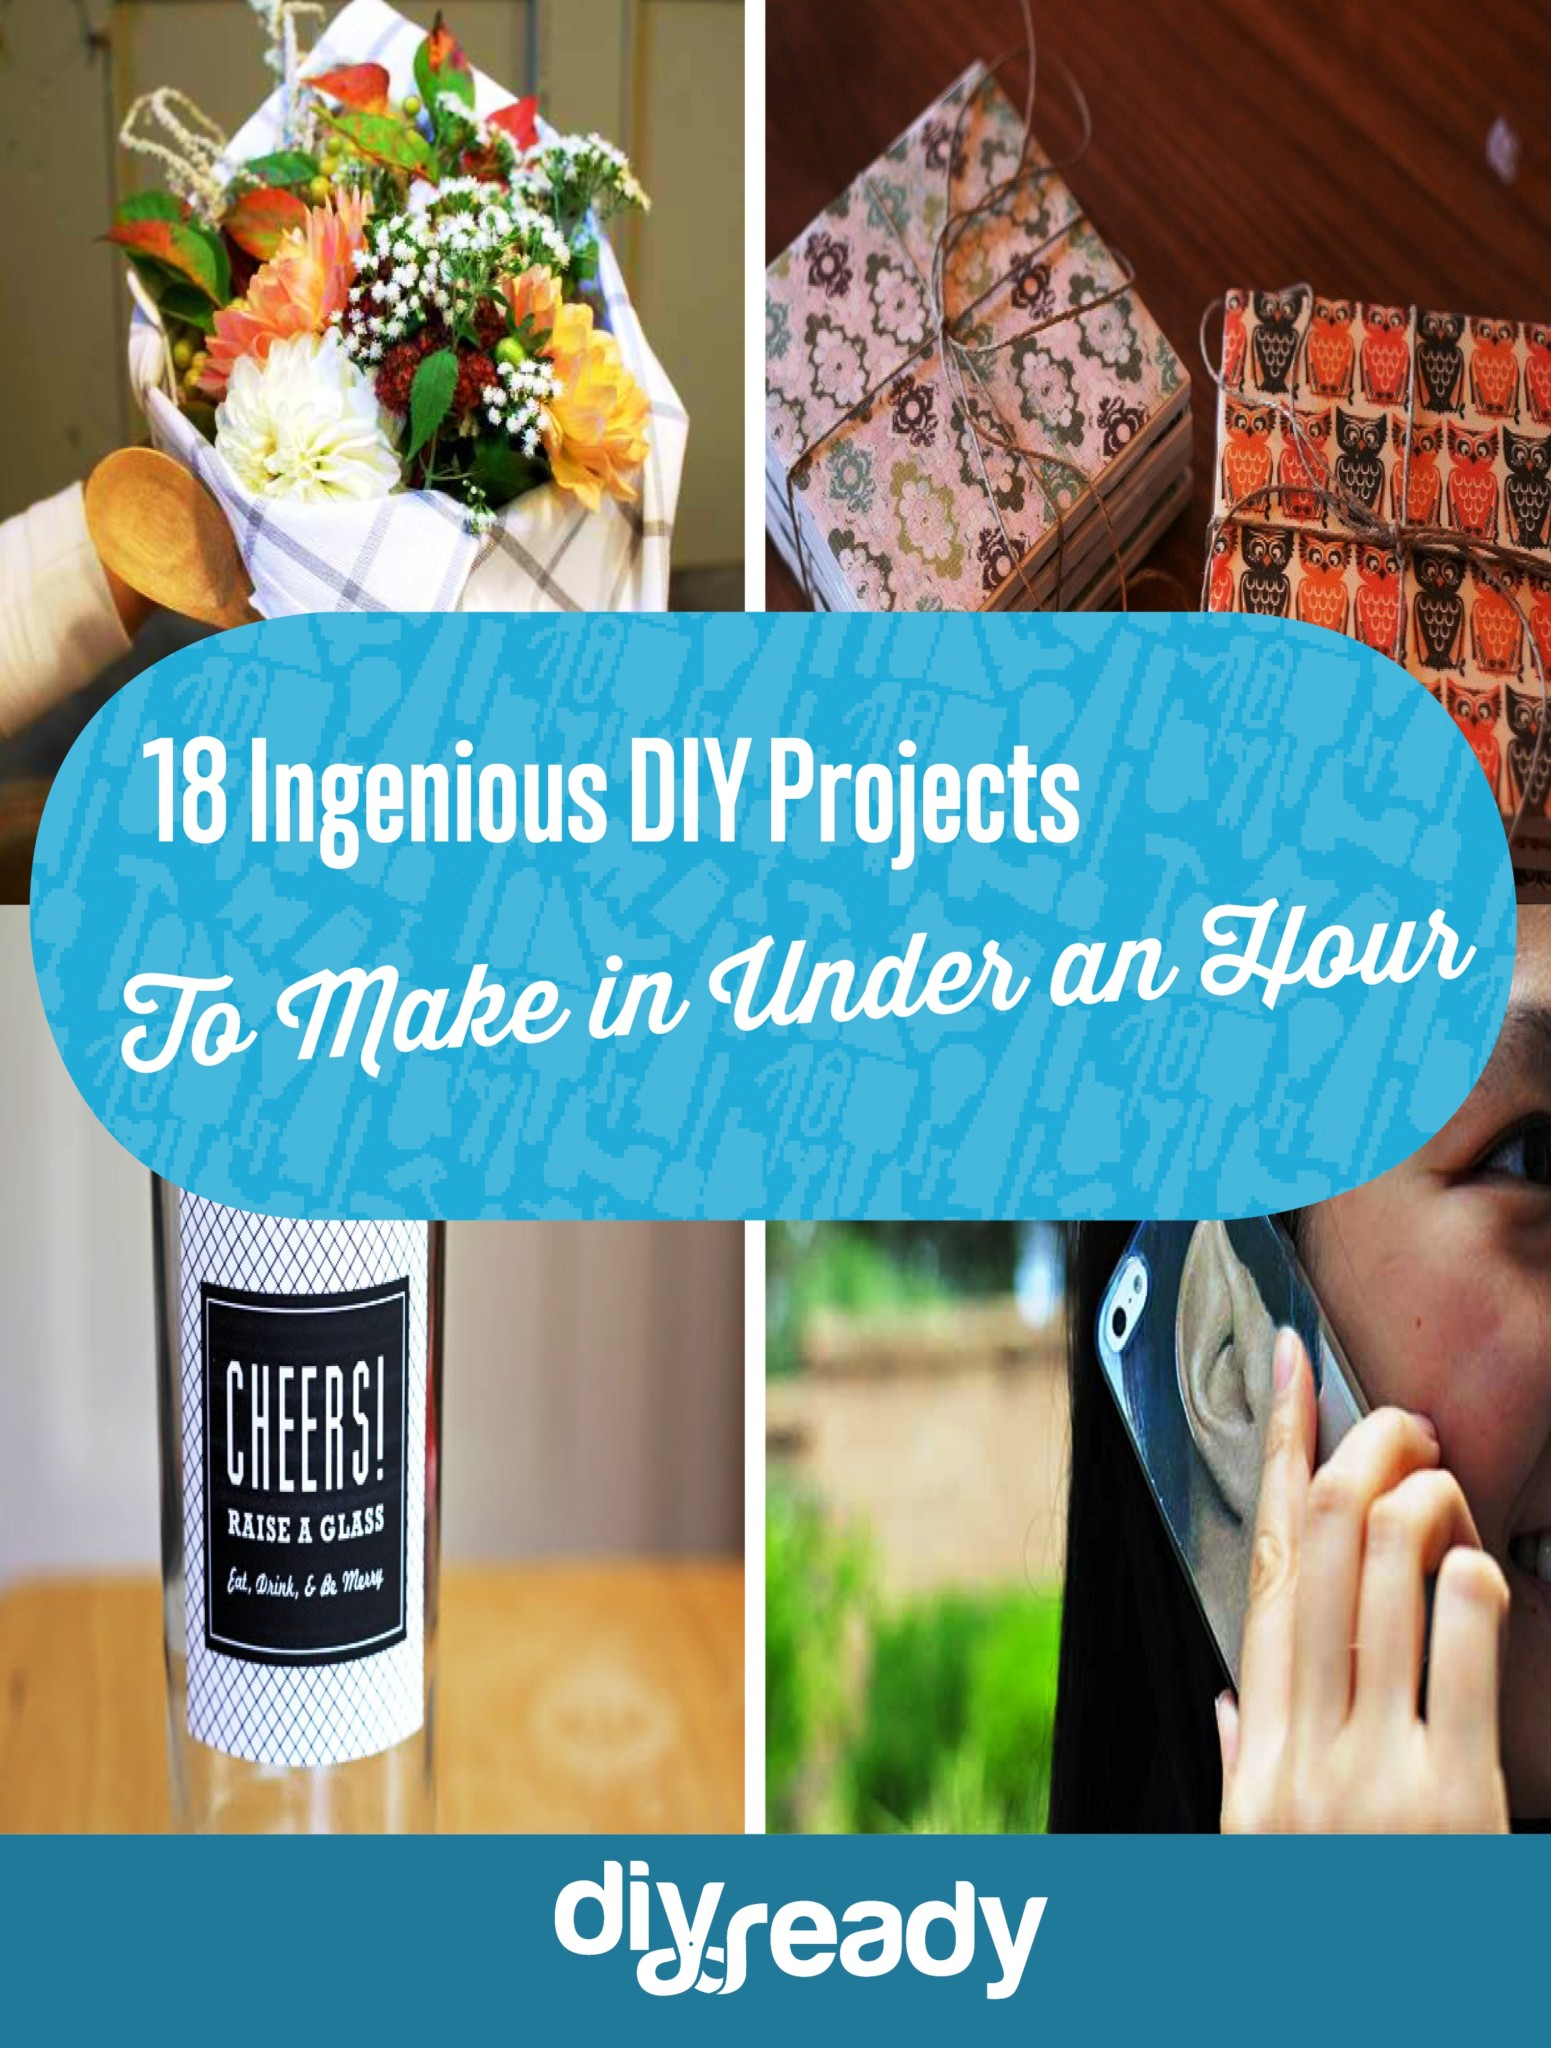 18 Ingenious DIY Projects to Make in Under an Hour